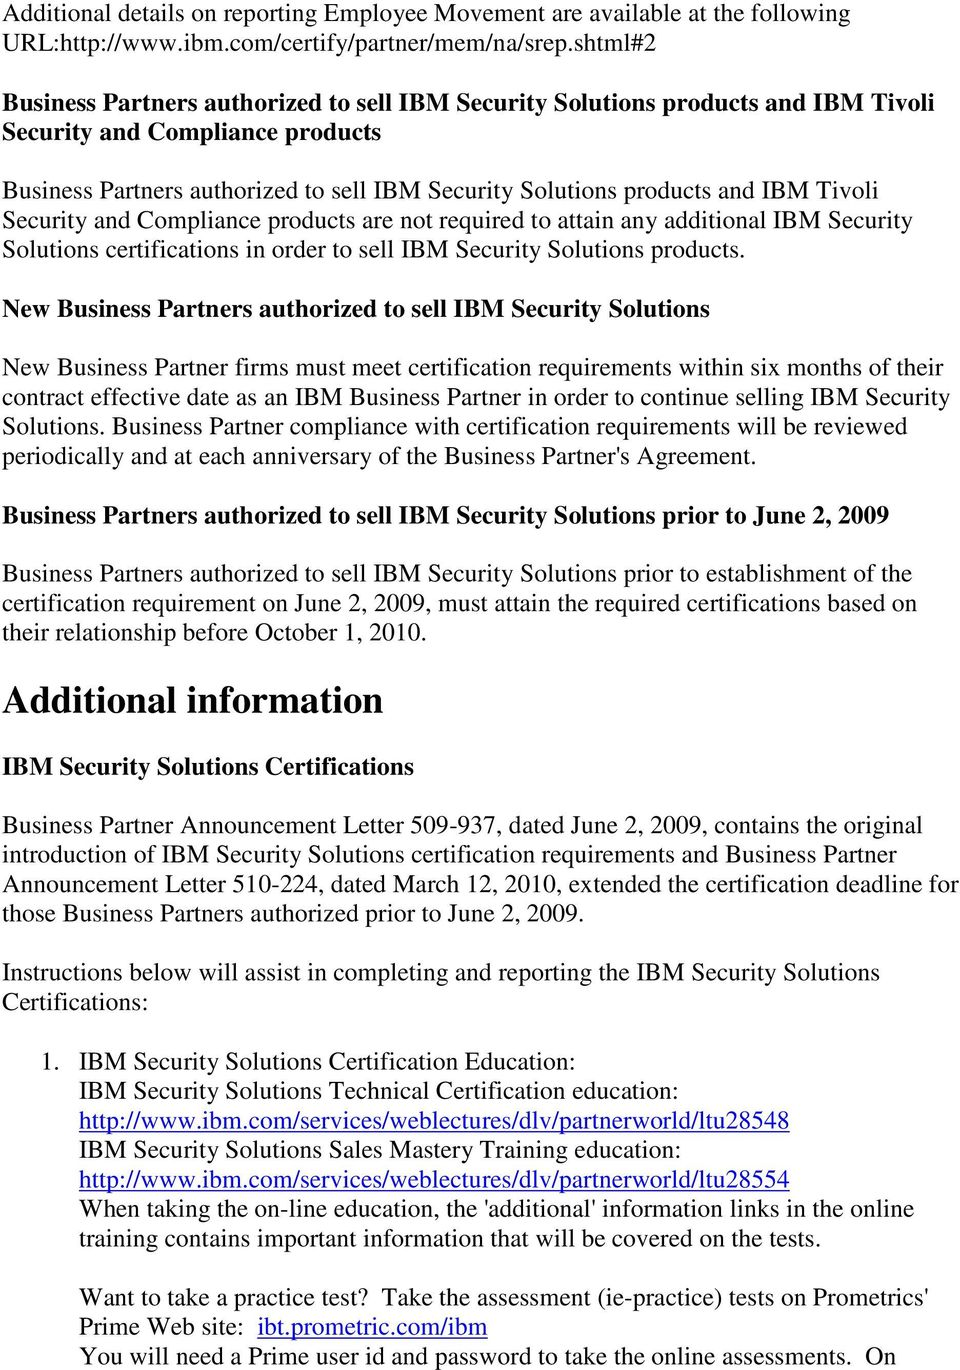 IBM Tivoli Security and Compliance products are not required to attain any additional IBM Security Solutions certifications in order to sell IBM Security Solutions products.